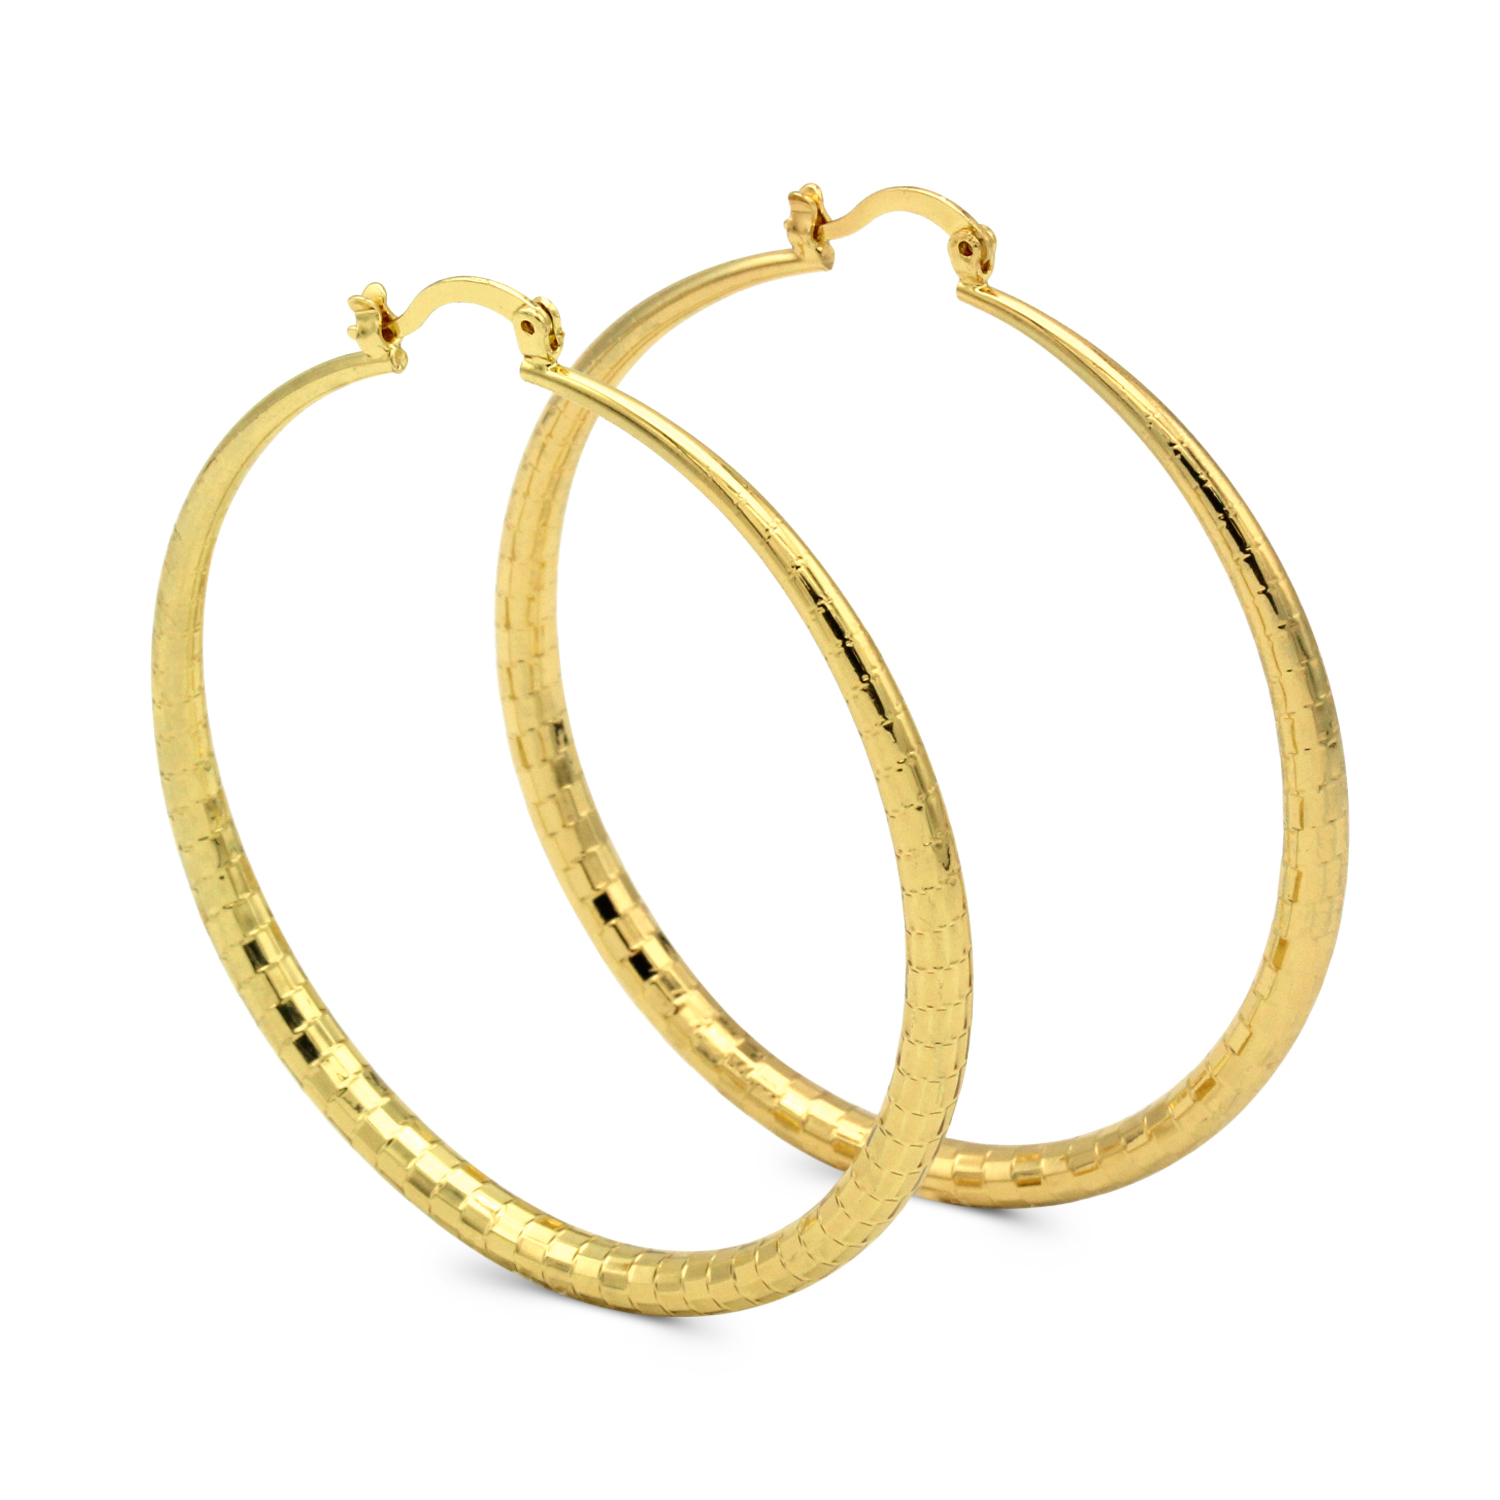 Hoop Earrings 14k Gold Plated Filled Fashion Stainless Steel Jewelry Circle Scale Designed Earring For Women 50mm - image 5 de 5